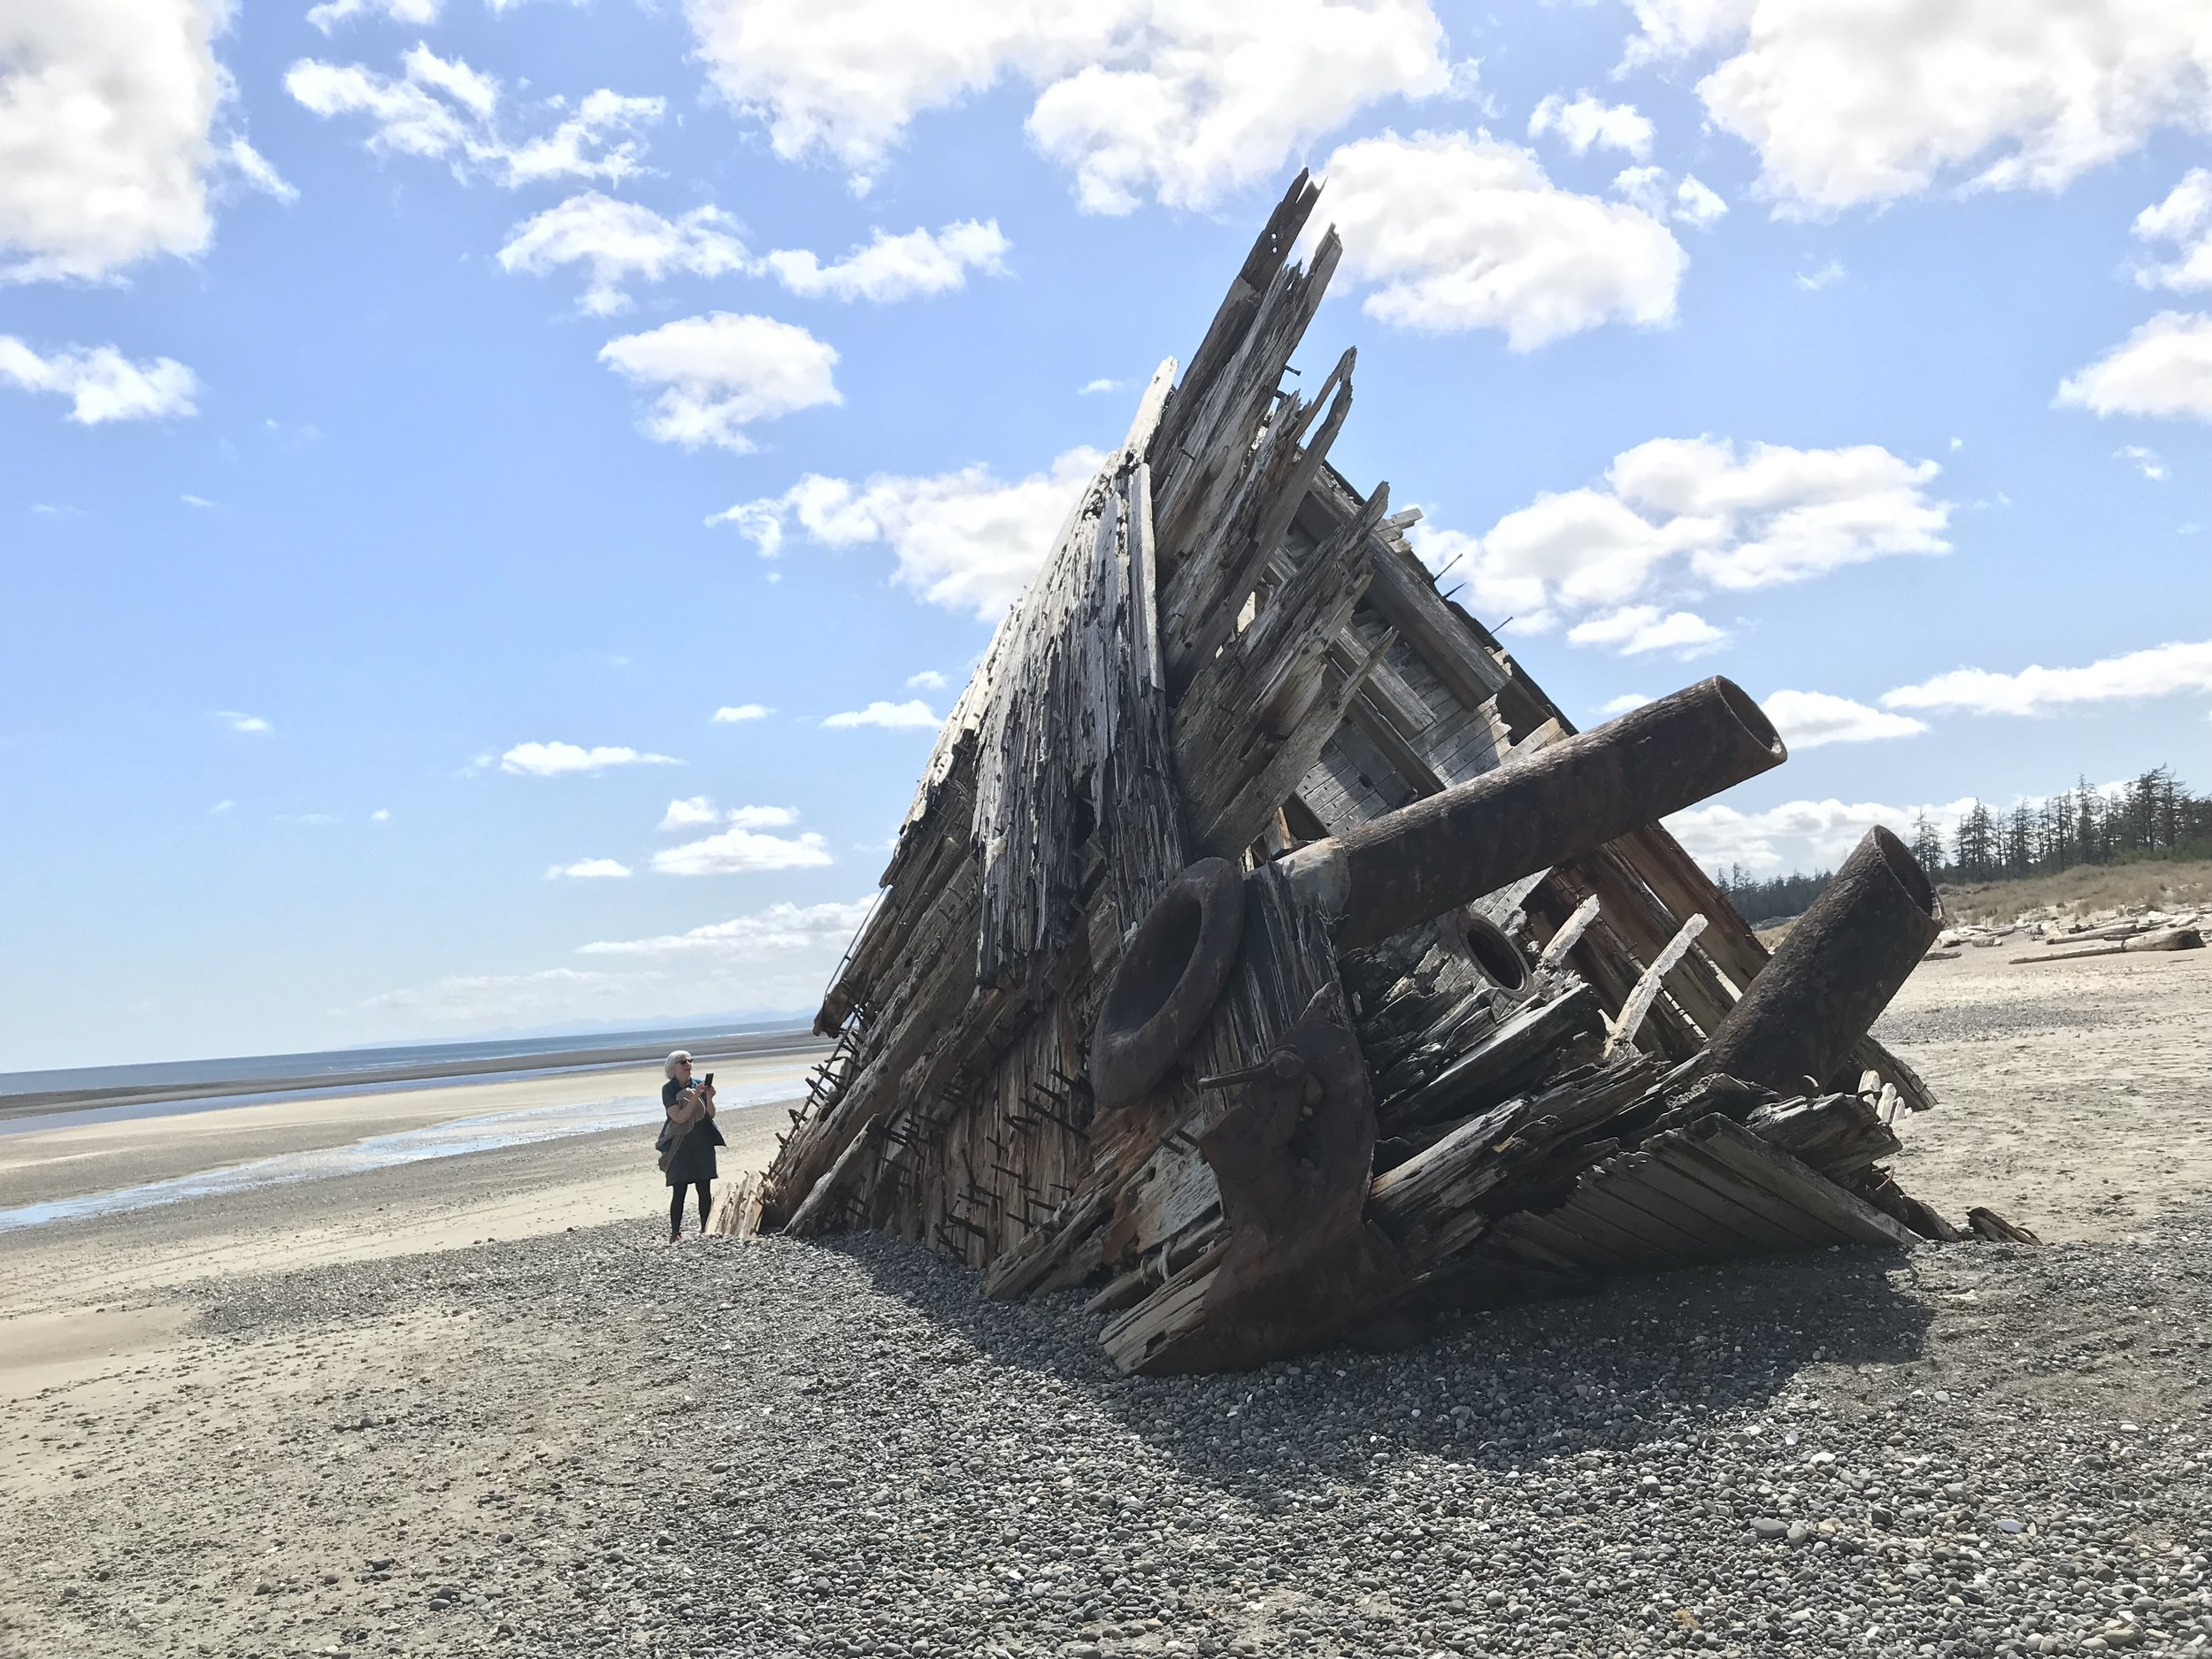 Scale of the wreck